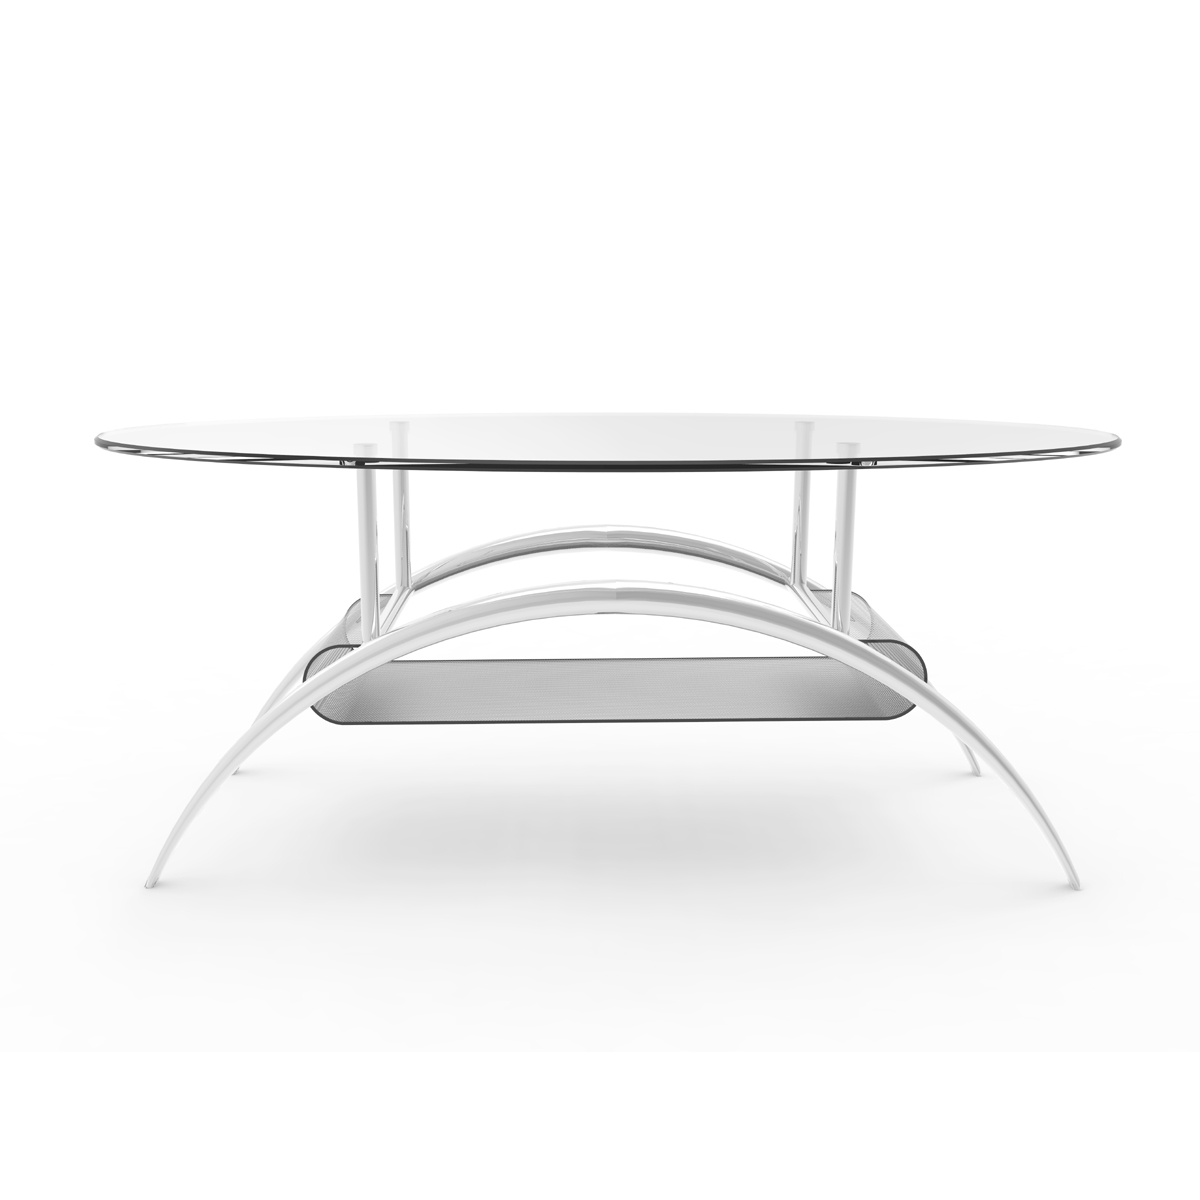 Cleveland 38 Inch Glass Coffee Table With Black Mesh